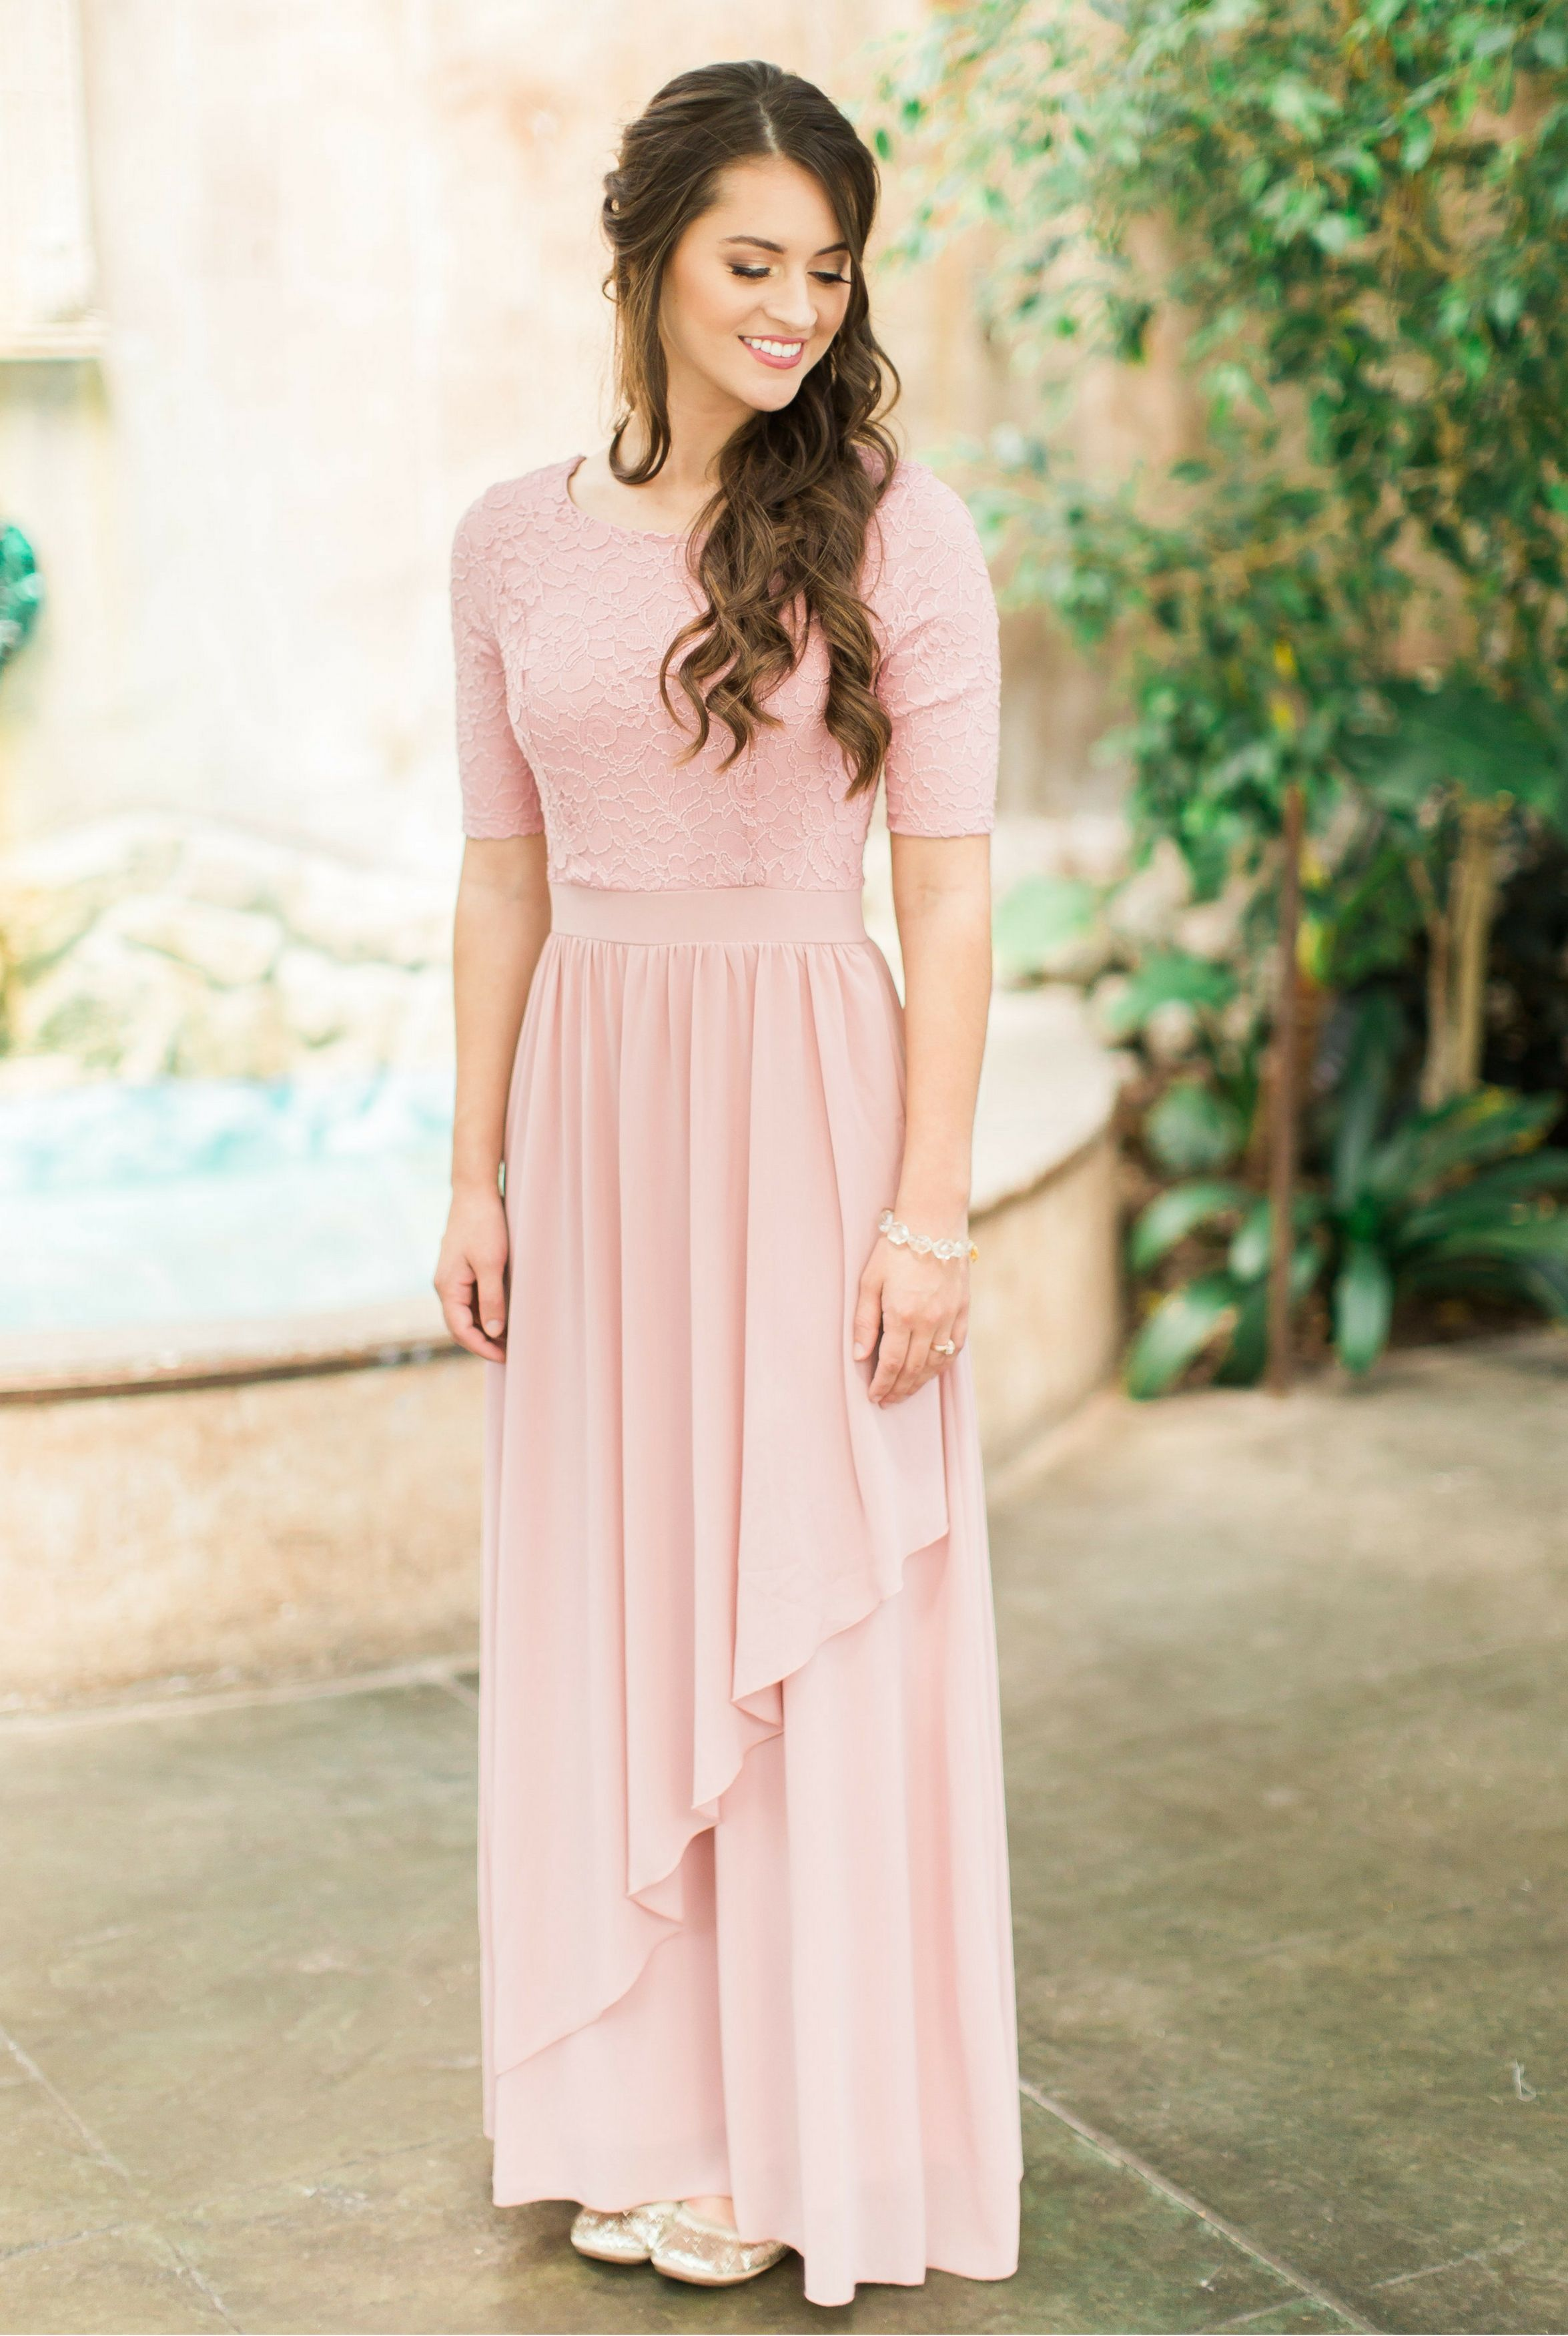 MW24350 | Allie\'s bridesmaid dress | Pinterest | Vestiditos, Ropa ...